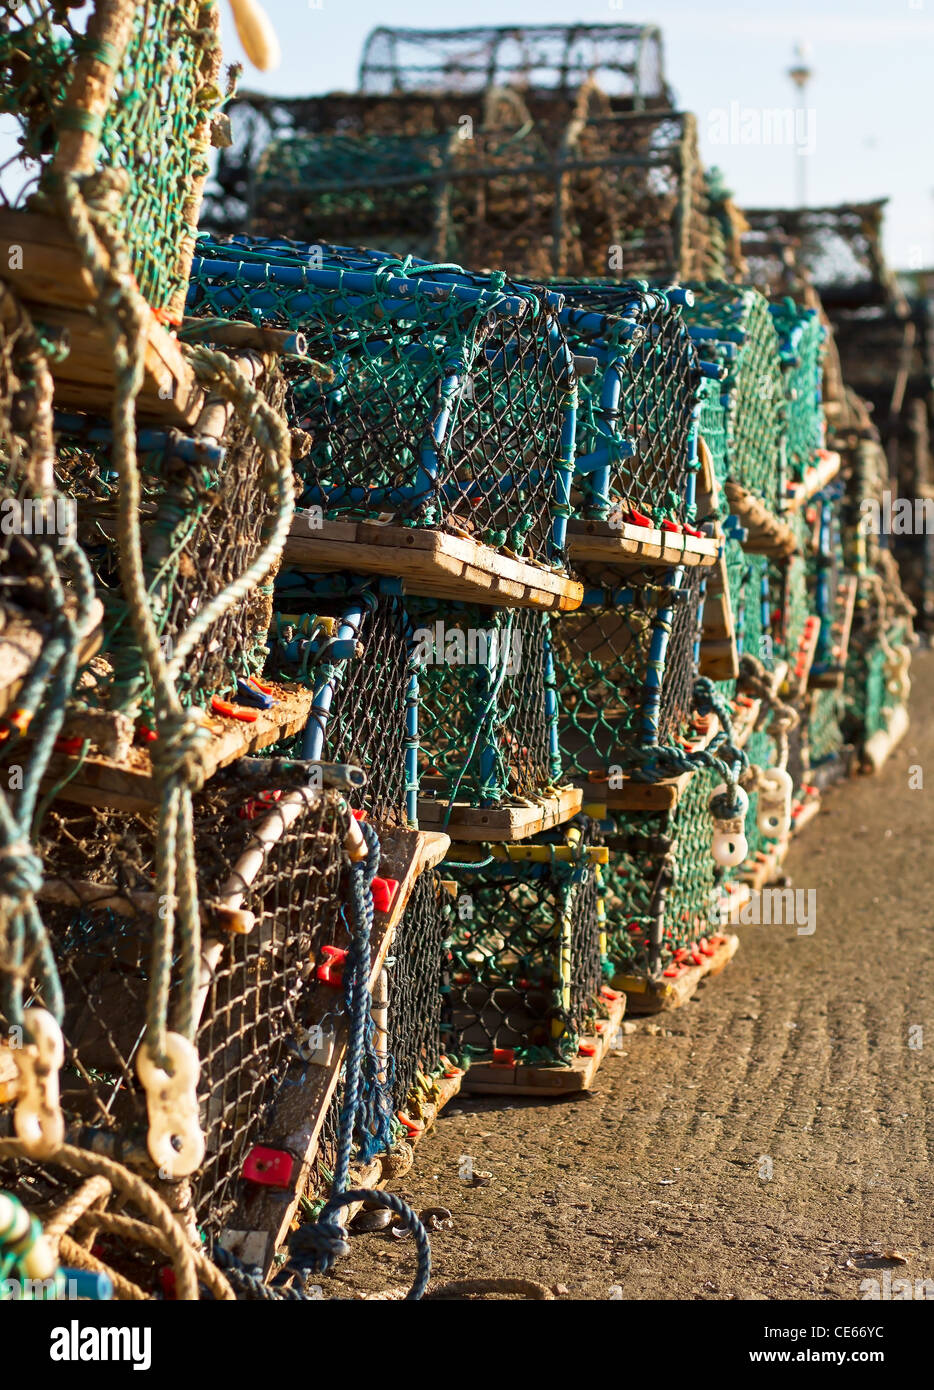 Lobster crab nets on a harbor - Stock Image